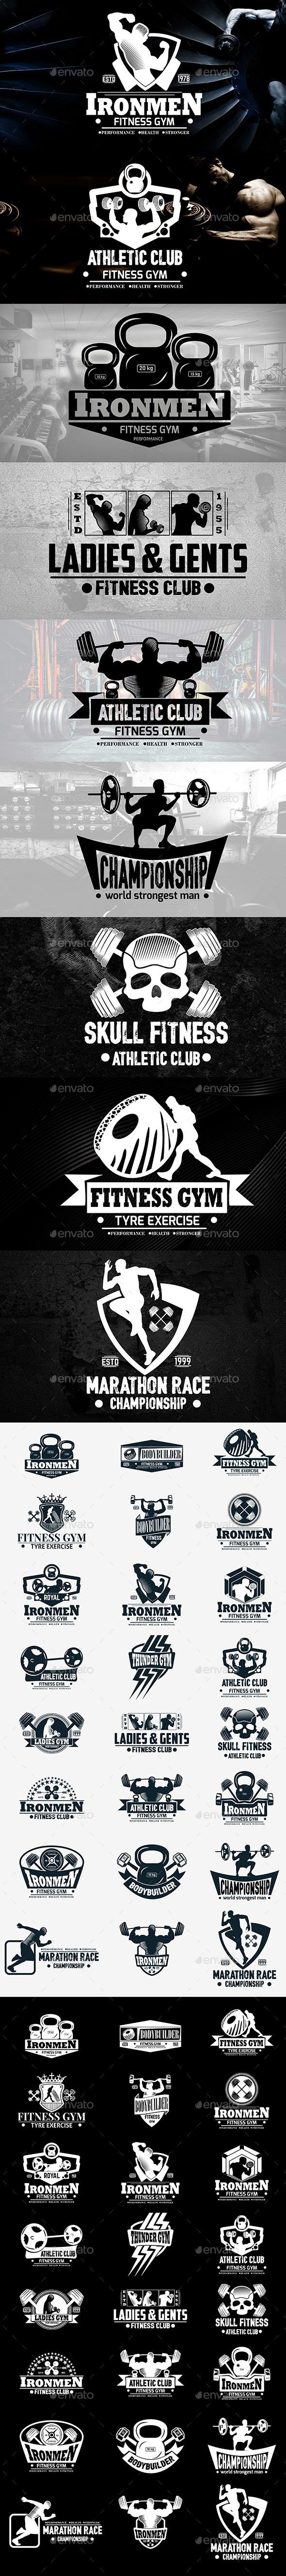 Fitness Gym Labels & Logos - Badges & Stickers Web Elements